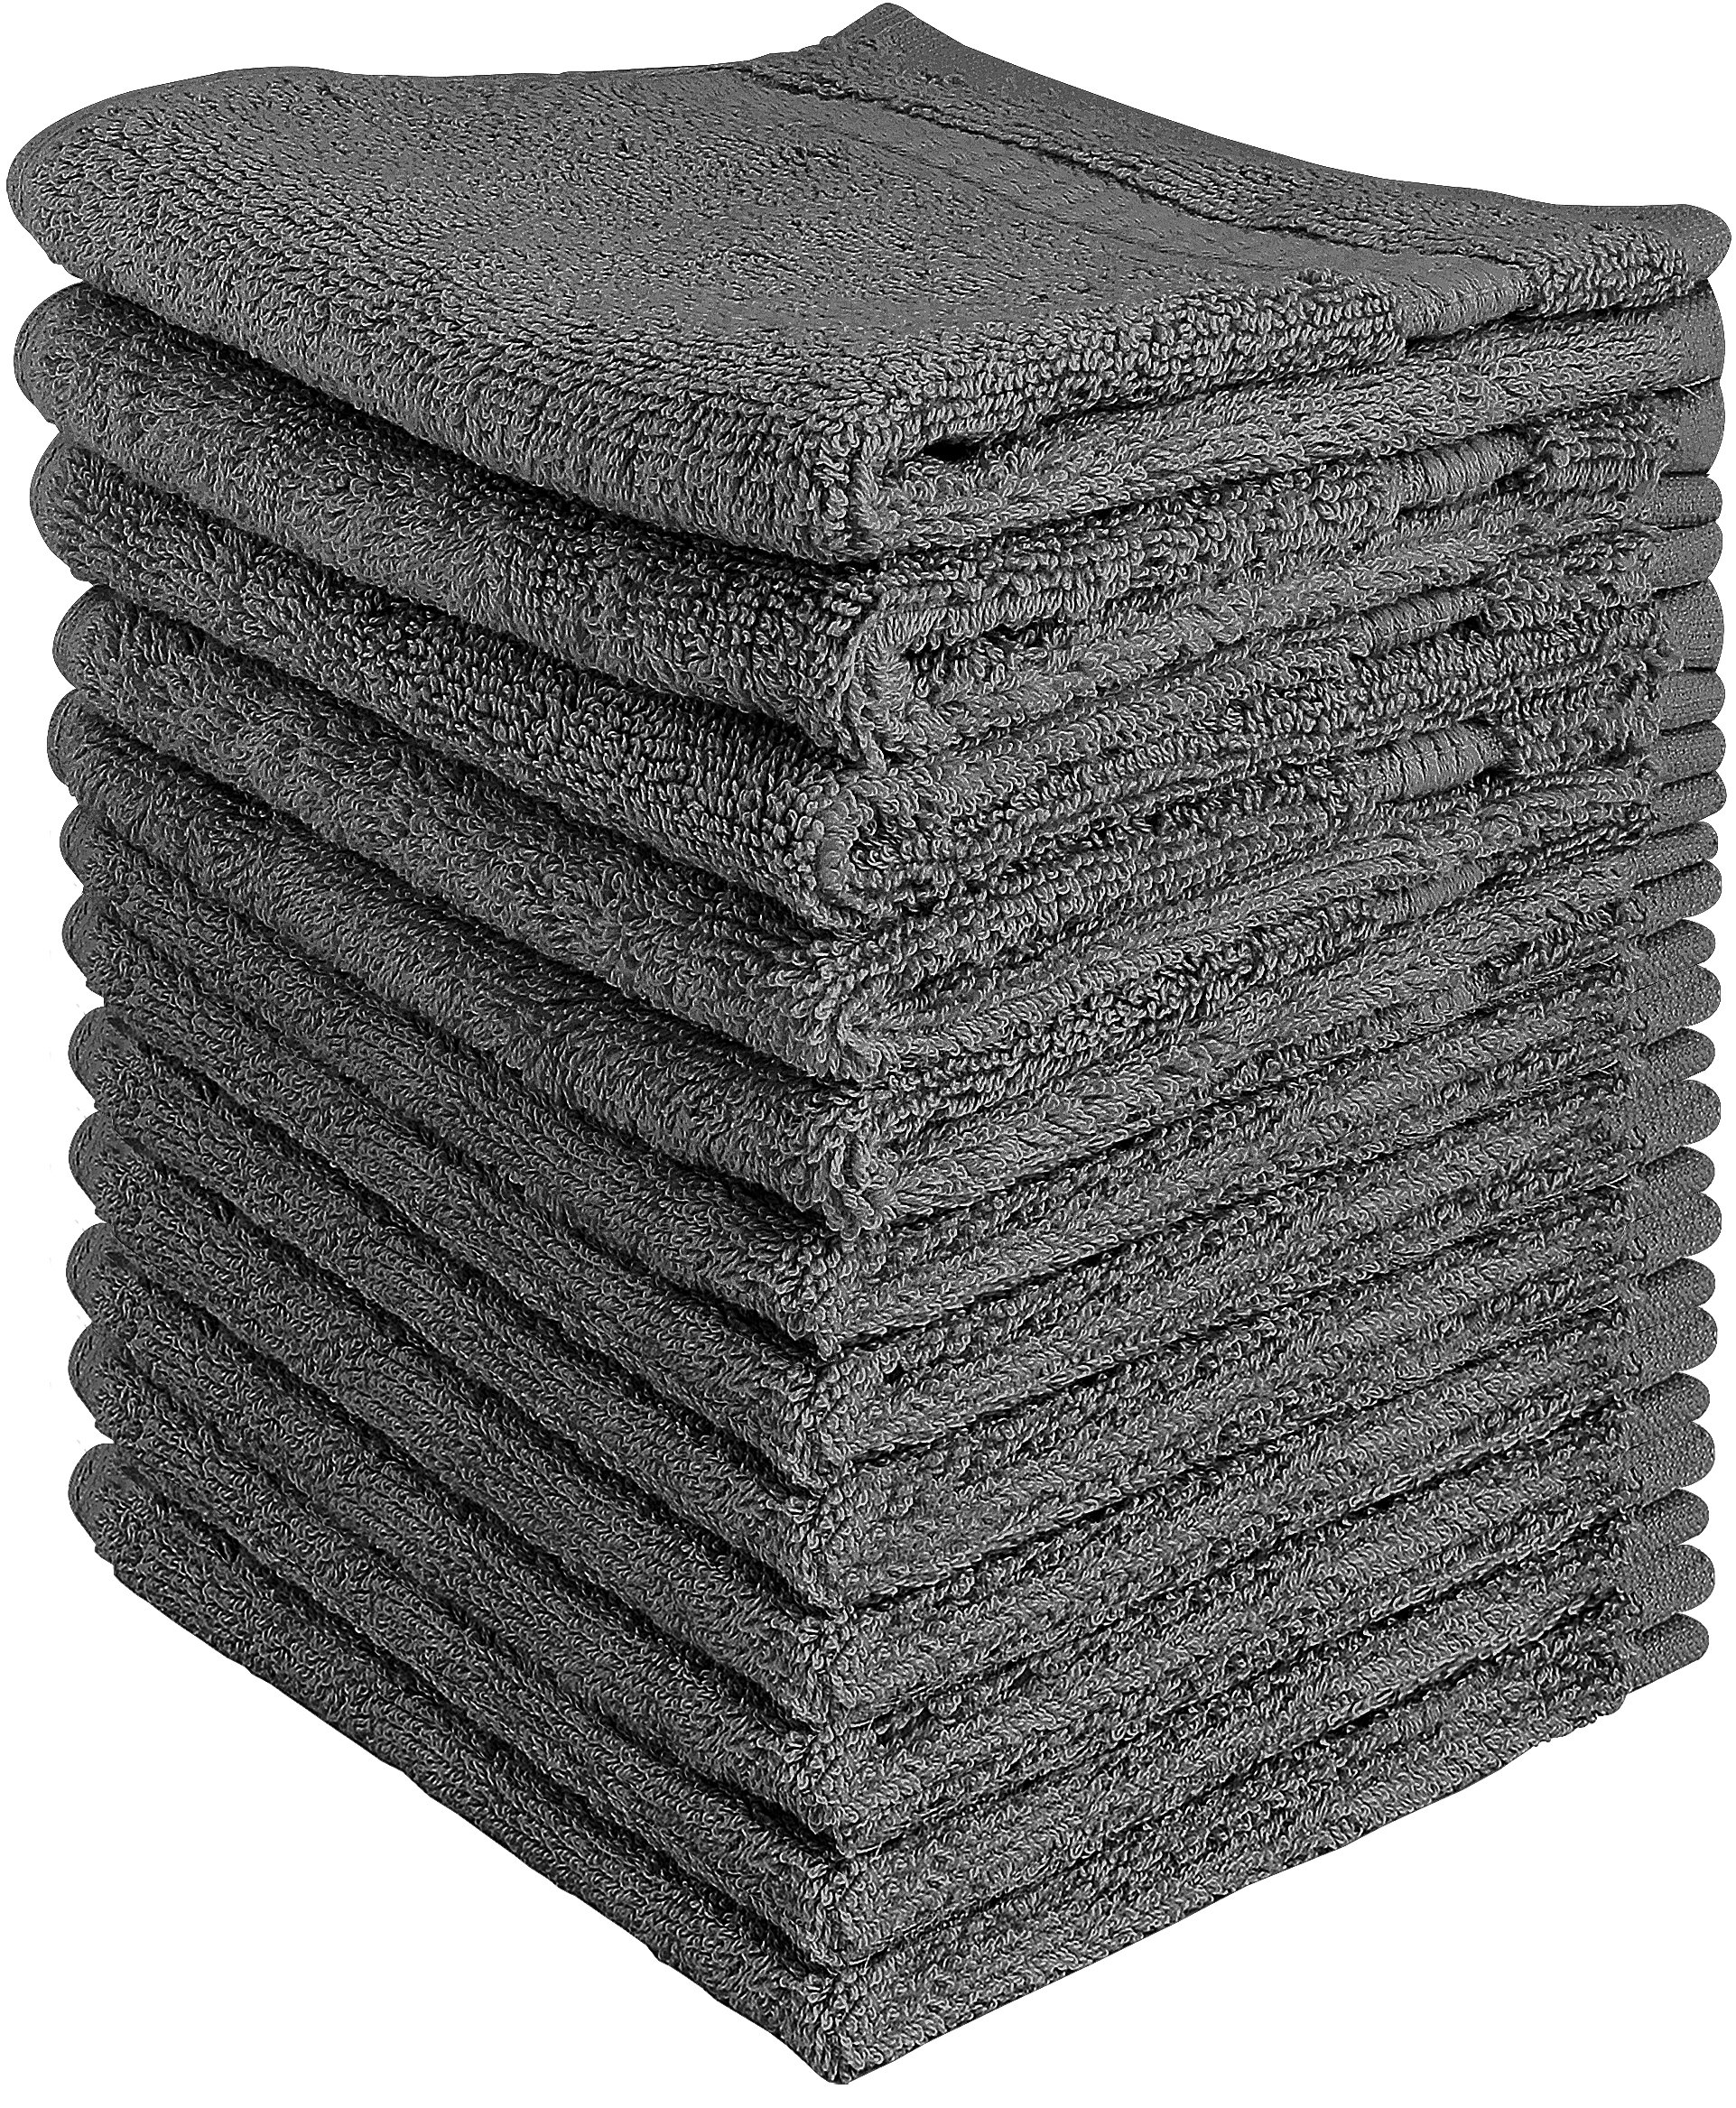 Utopia Towels Luxury Cotton Washcloth Towel Set (12 Pack, Grey, 12 x 12 Inches) Multi-purpose Extra Soft Fingertip Towels, Highly Absorbent Face Cloths, Machine Washable Sport and Workout Towels by Utopia Towels